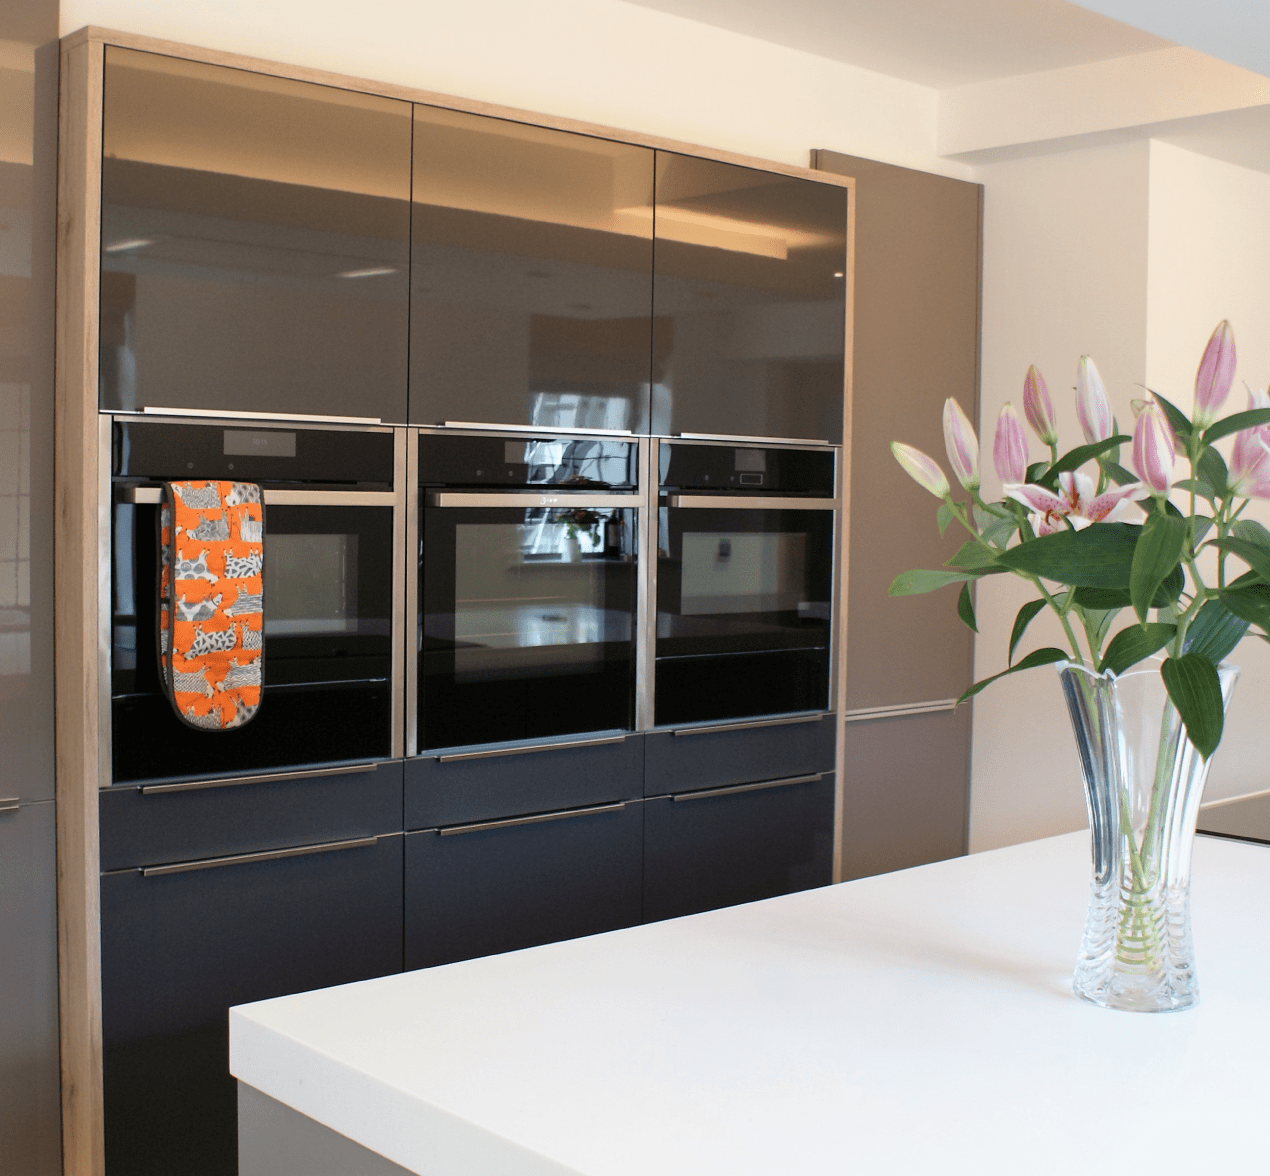 Ultimate designer kitchen in colne case study kitchen for Ultimate kitchen design